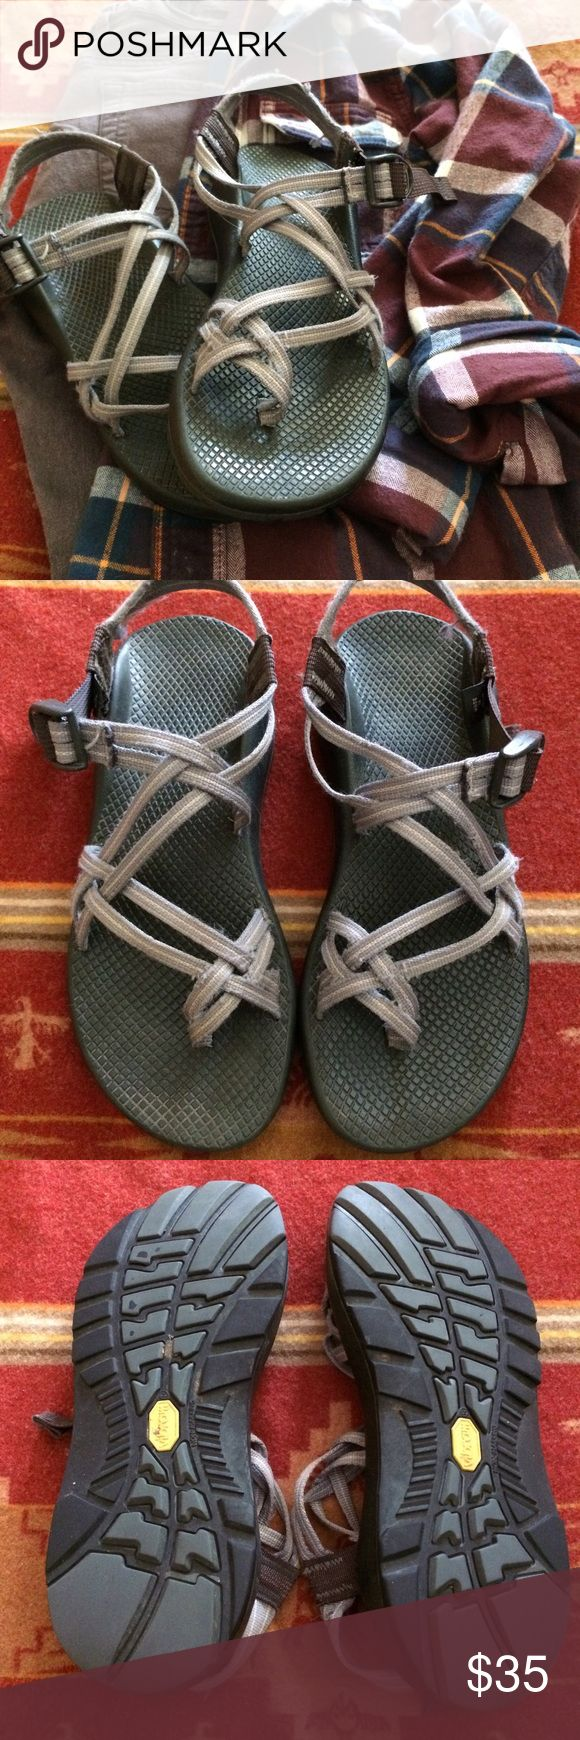 Grey Women's Chaco Sandals - size 10 Grey Women's Chacos with the double strap and toe loop. These have seriously taken me all over. It have a lot of life left in them. Chacos last forever and can at any time be sent back to the factory to be repaired, re-webbed, or re-soled. Best all terrain sandals out there. Size 10. Chaco Shoes